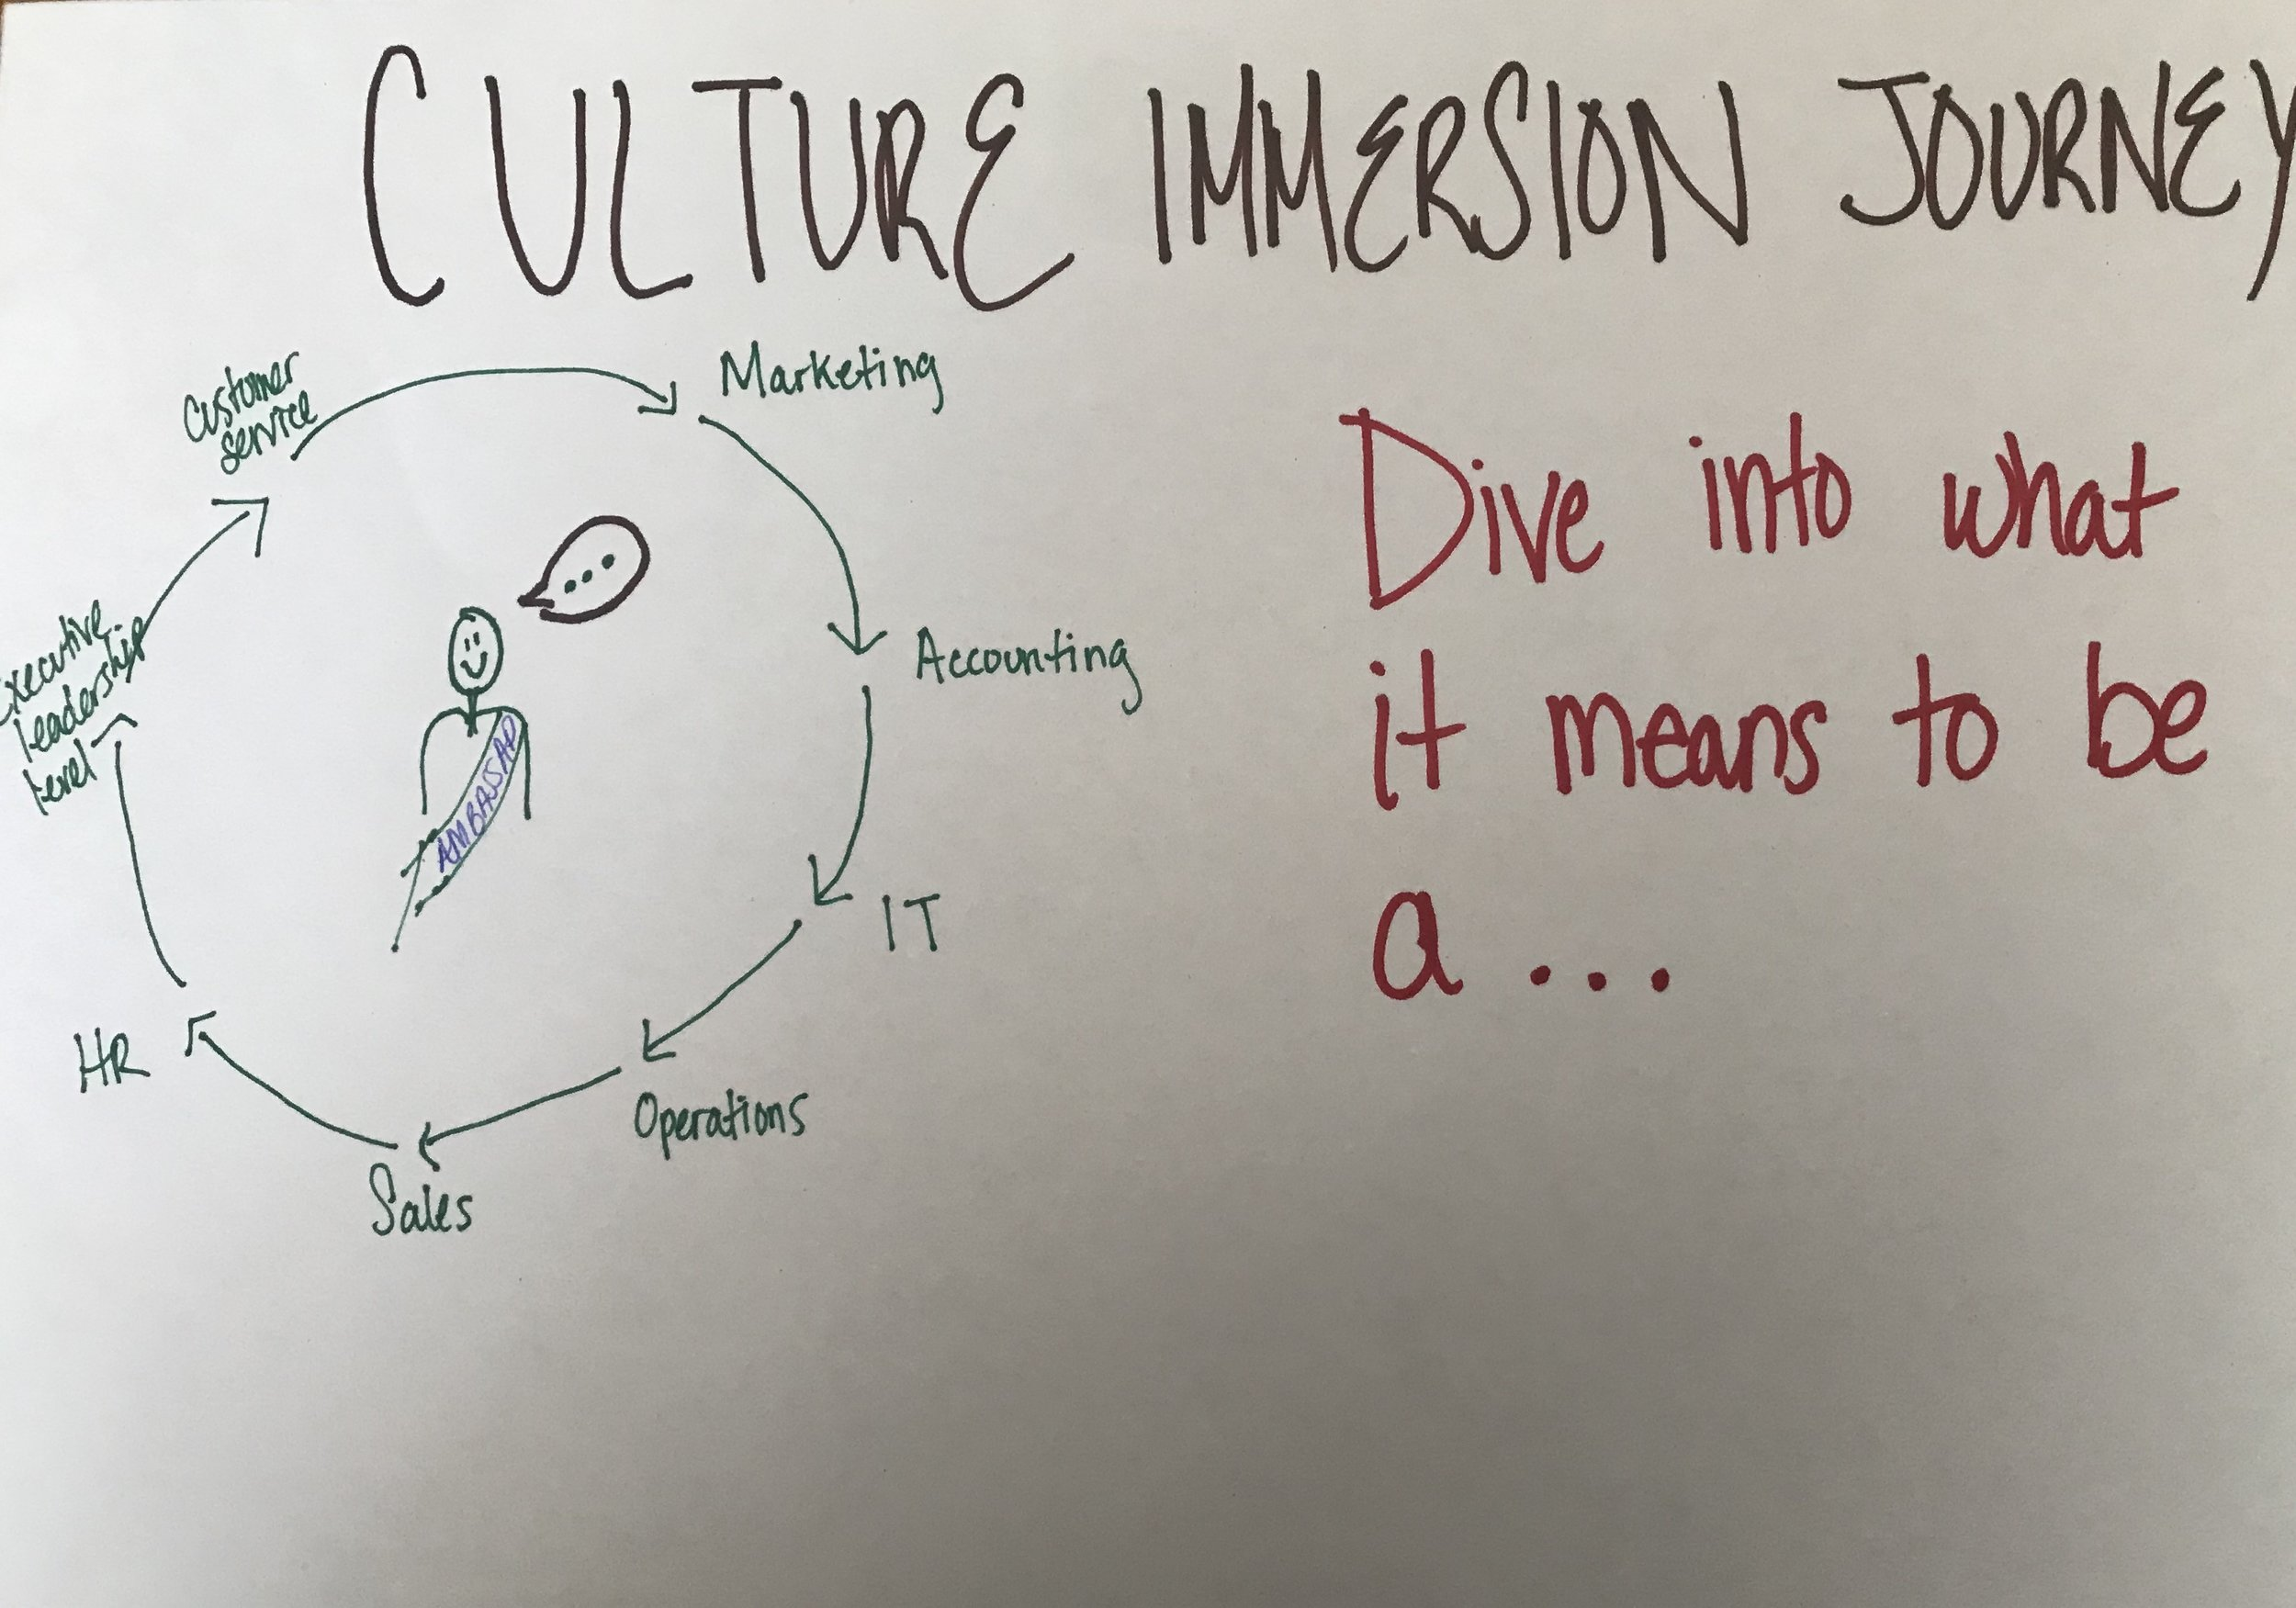 Culture Immersion Journey